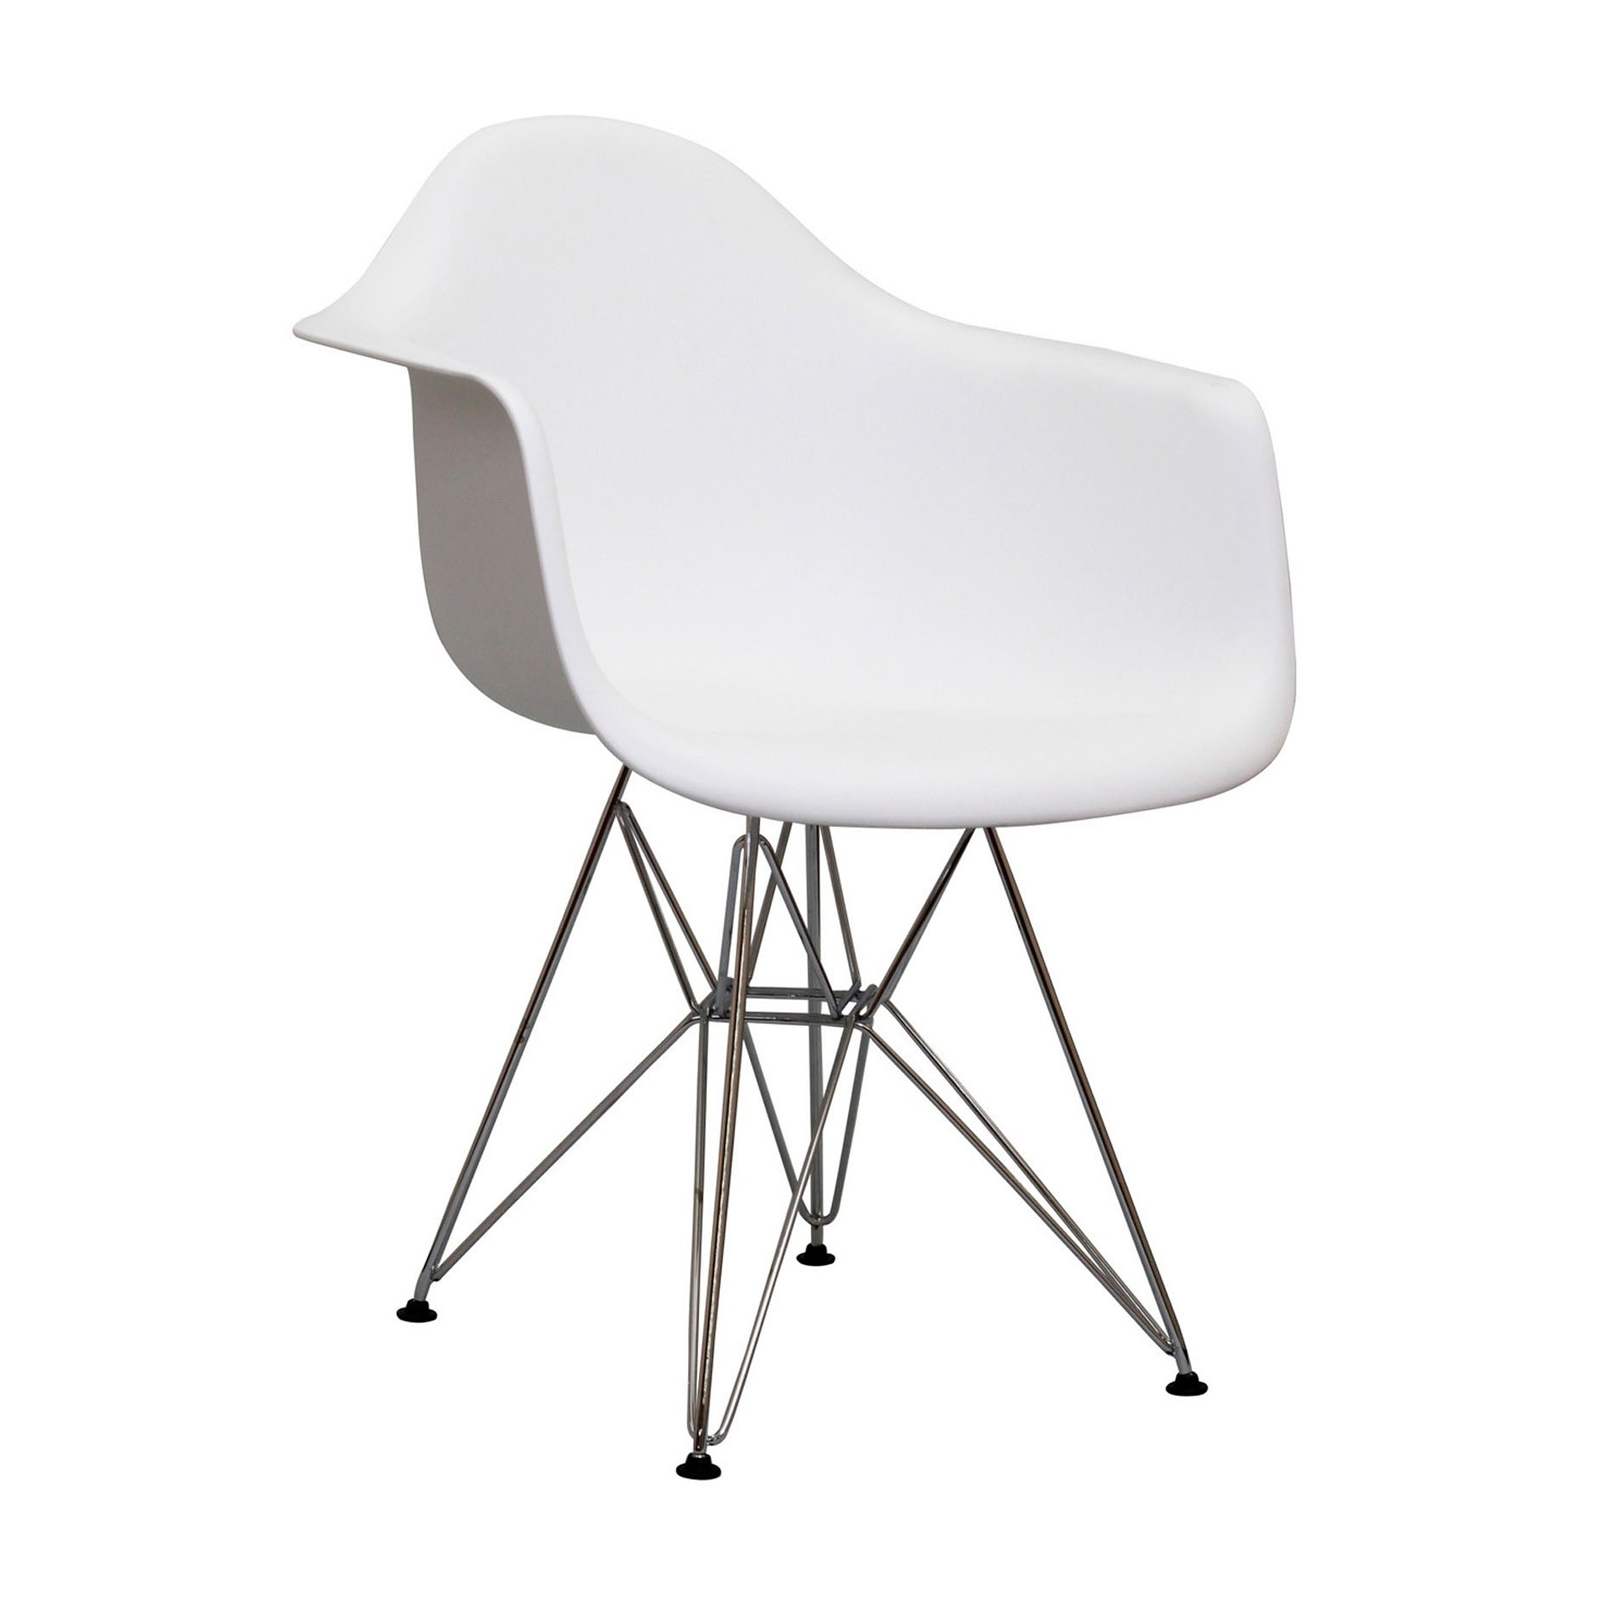 eames chair white desk neck pillow armshell rental event furniture